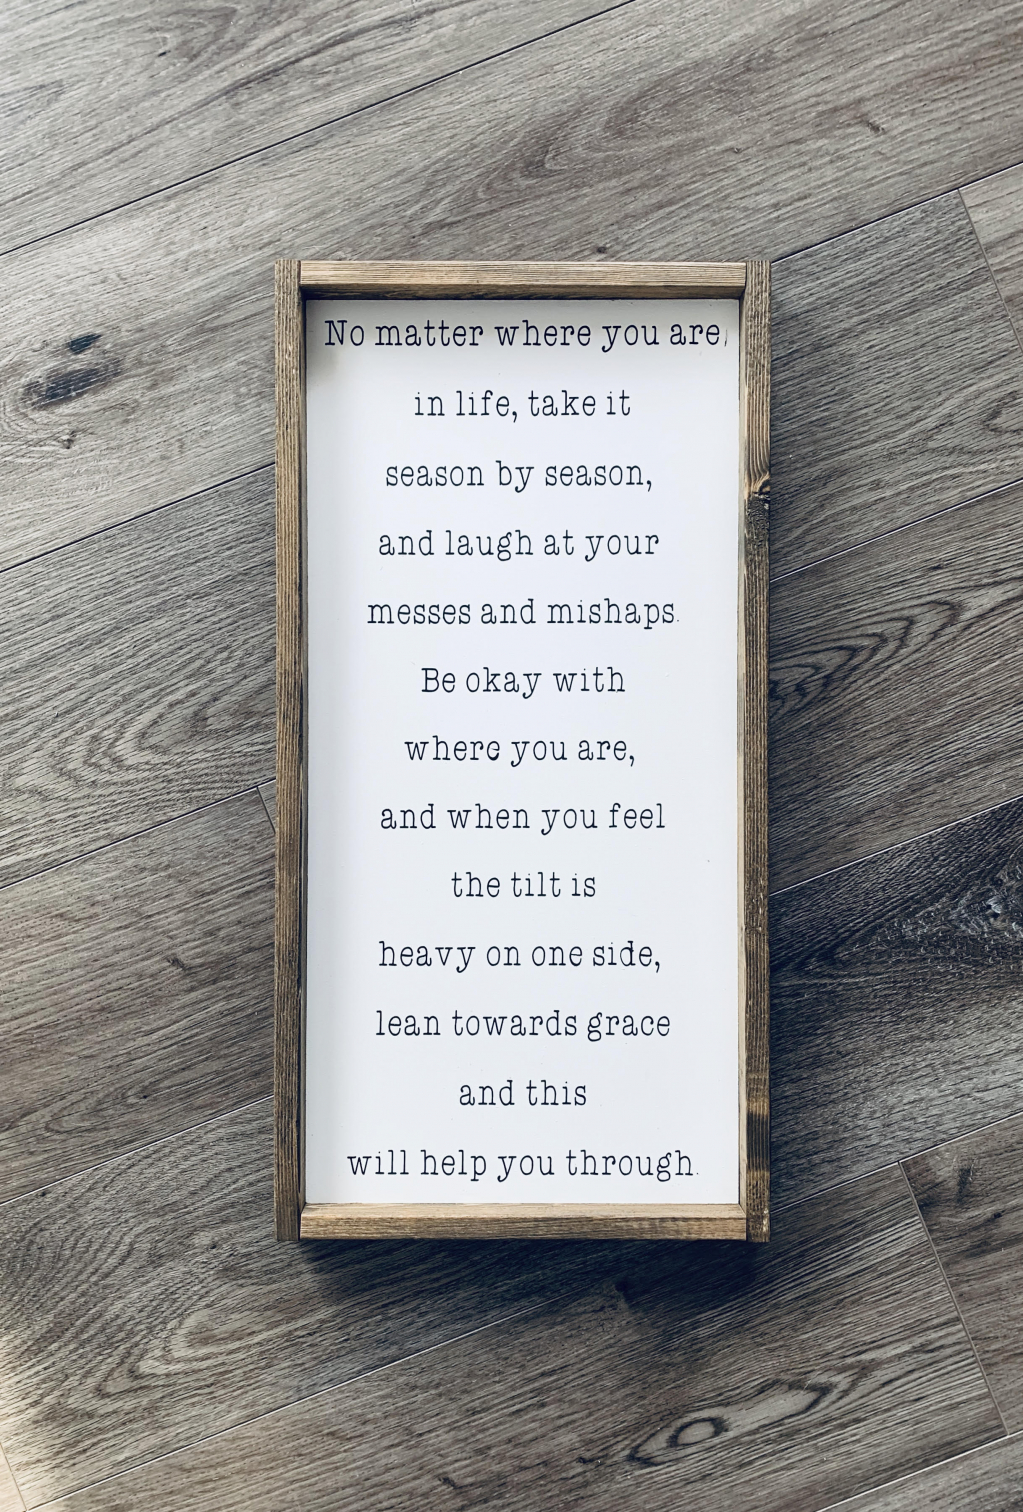 Thumbnail of: Beautiful handpainted wood sign from Dress Your Mess Decor